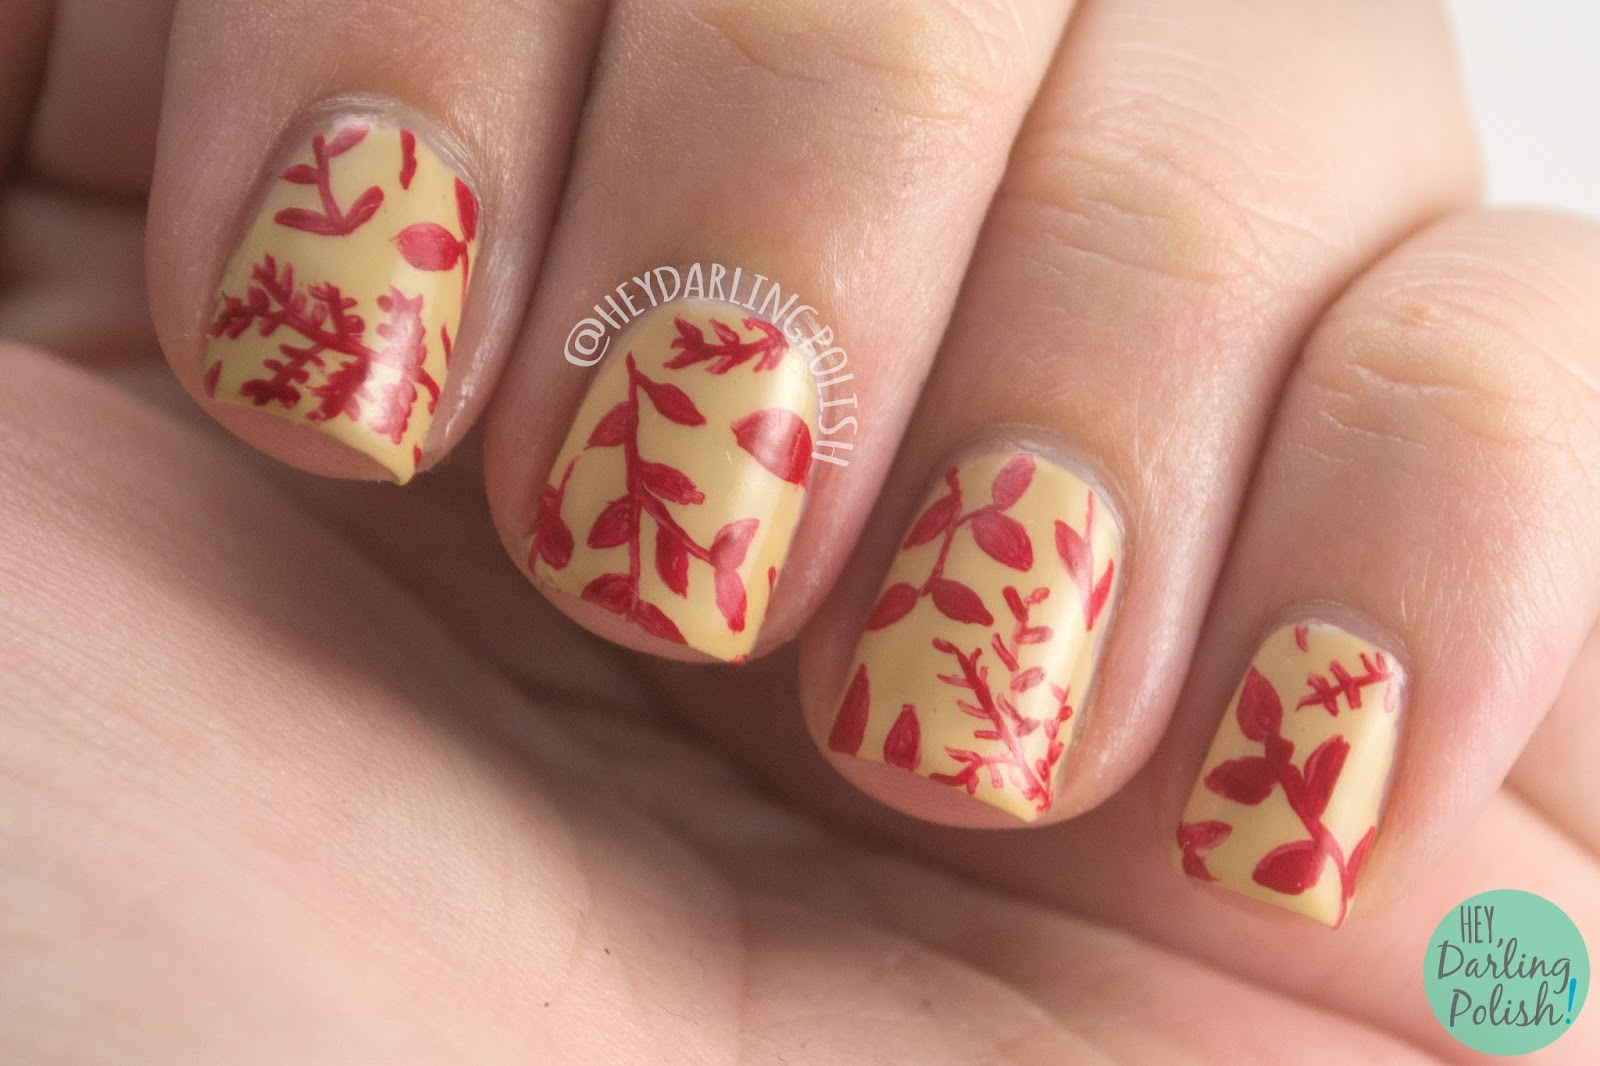 nails, nail art, nail polish, leaves, pattern, 31DC2014, 31 day challenge, hey darling polish, red, nature